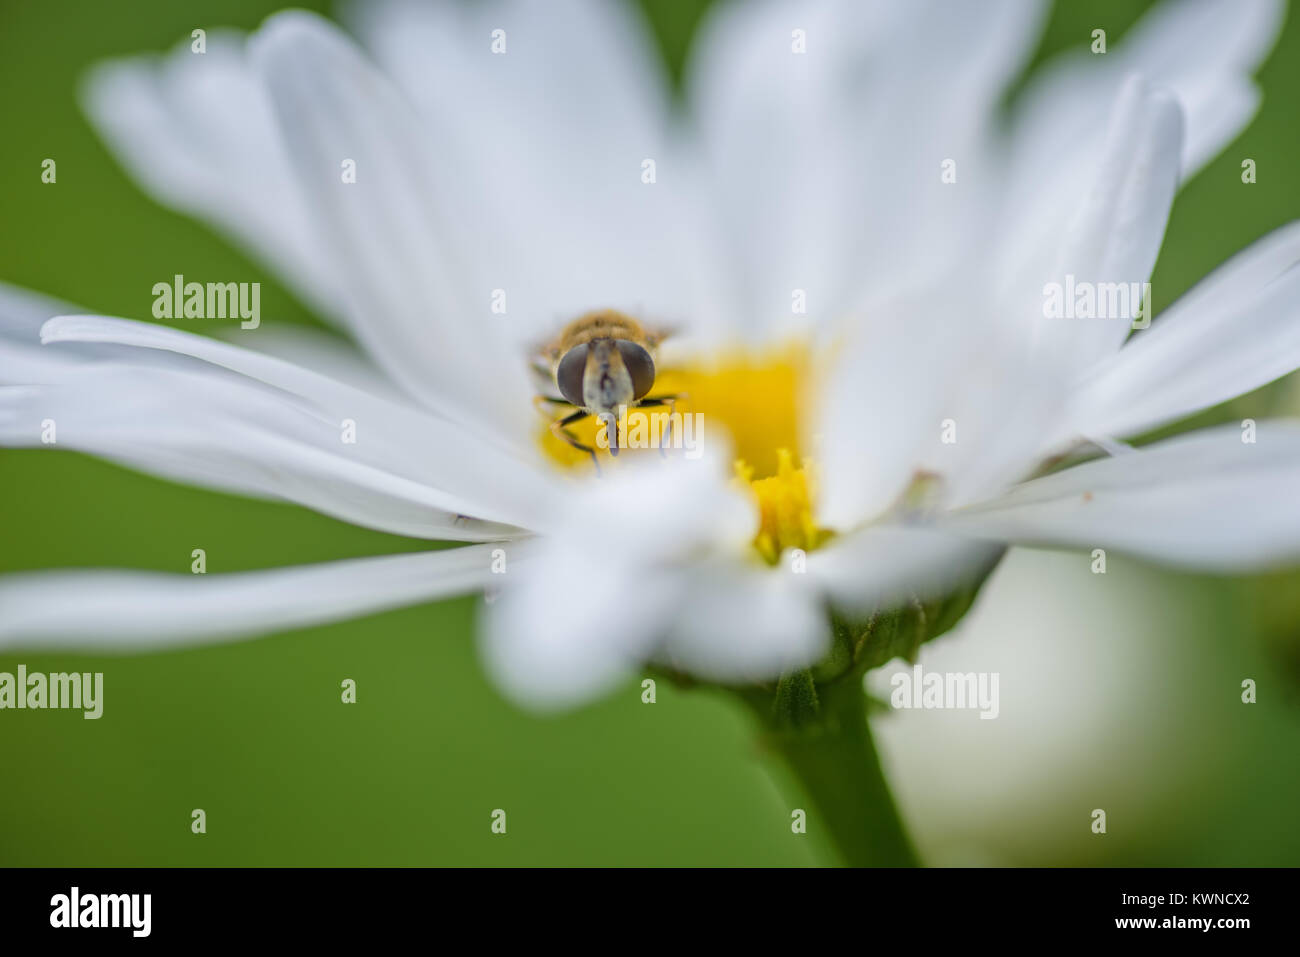 closeup of bee on white daisy - Stock Image